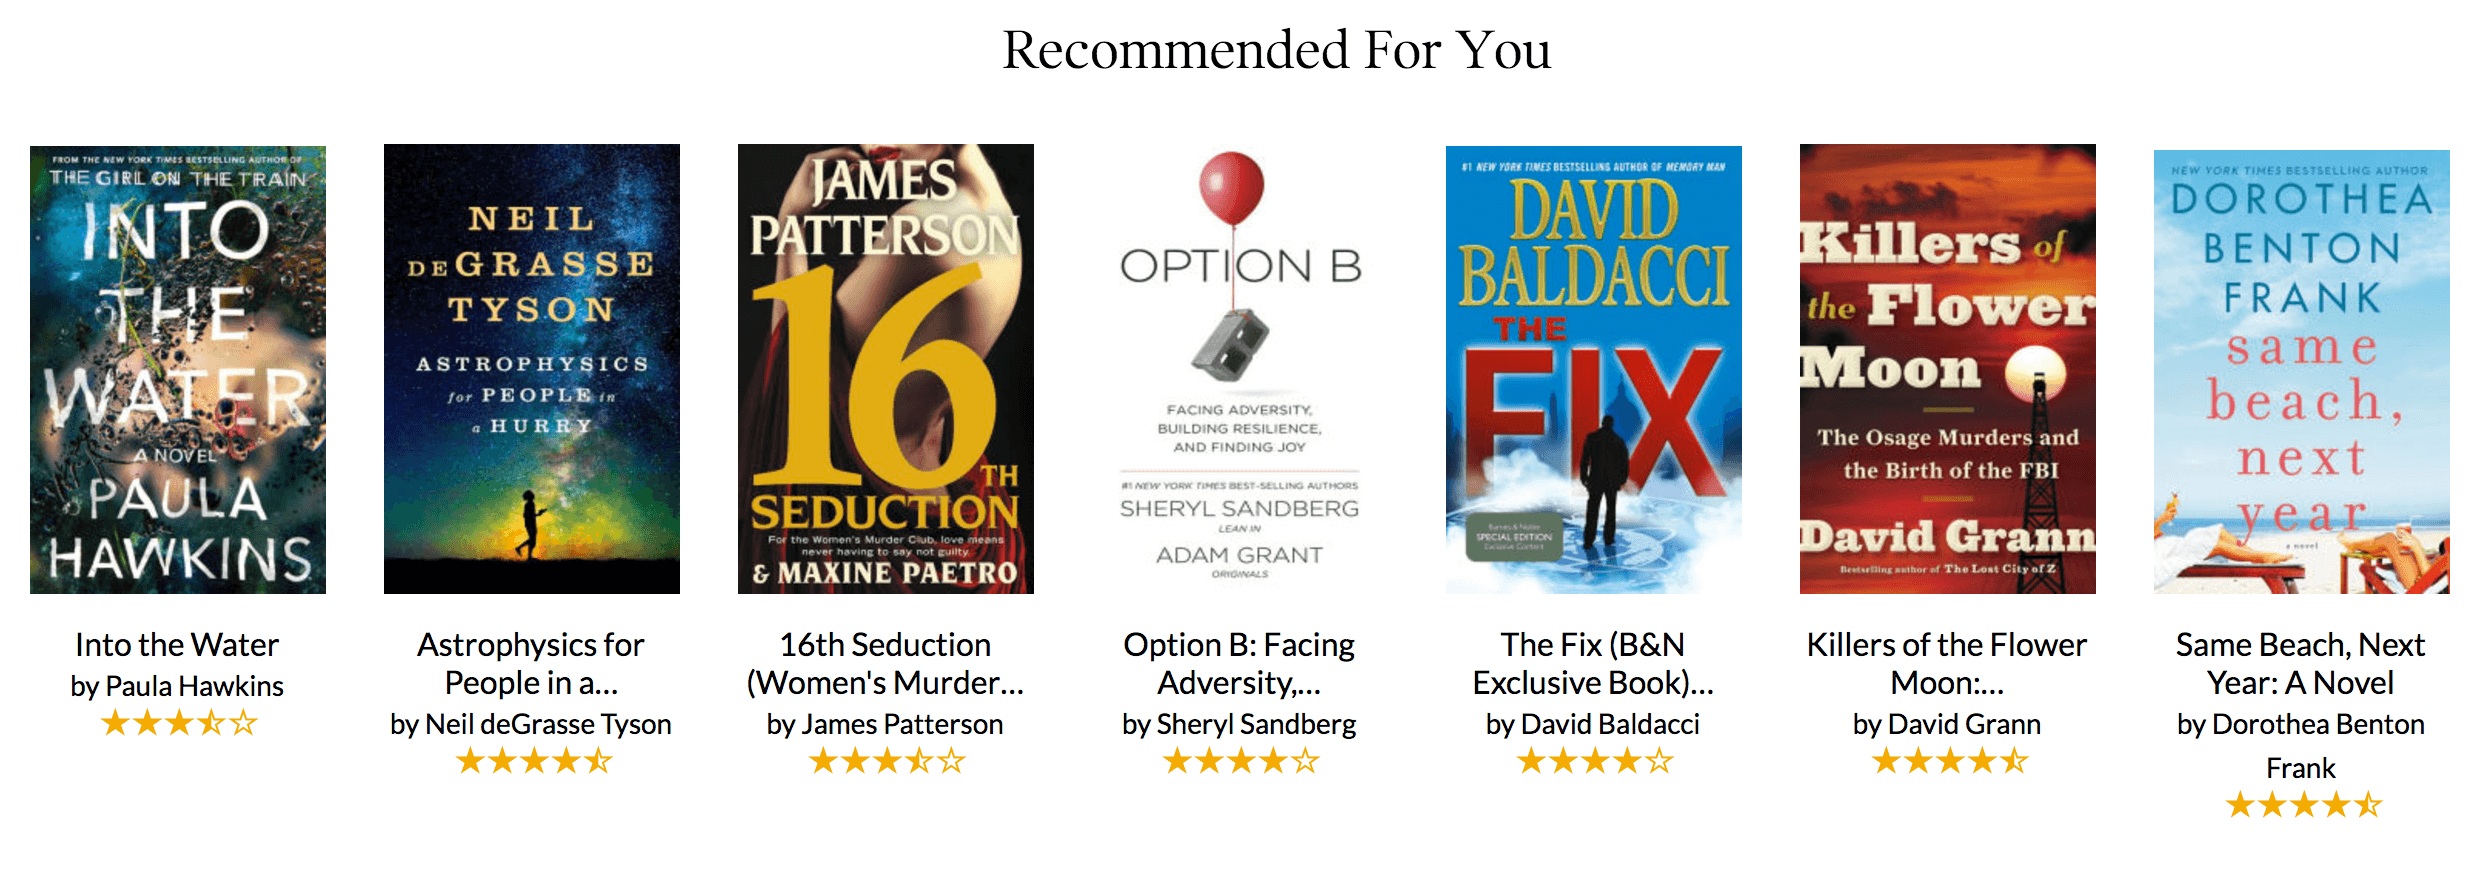 Product Recommendations - Barnes and Noble